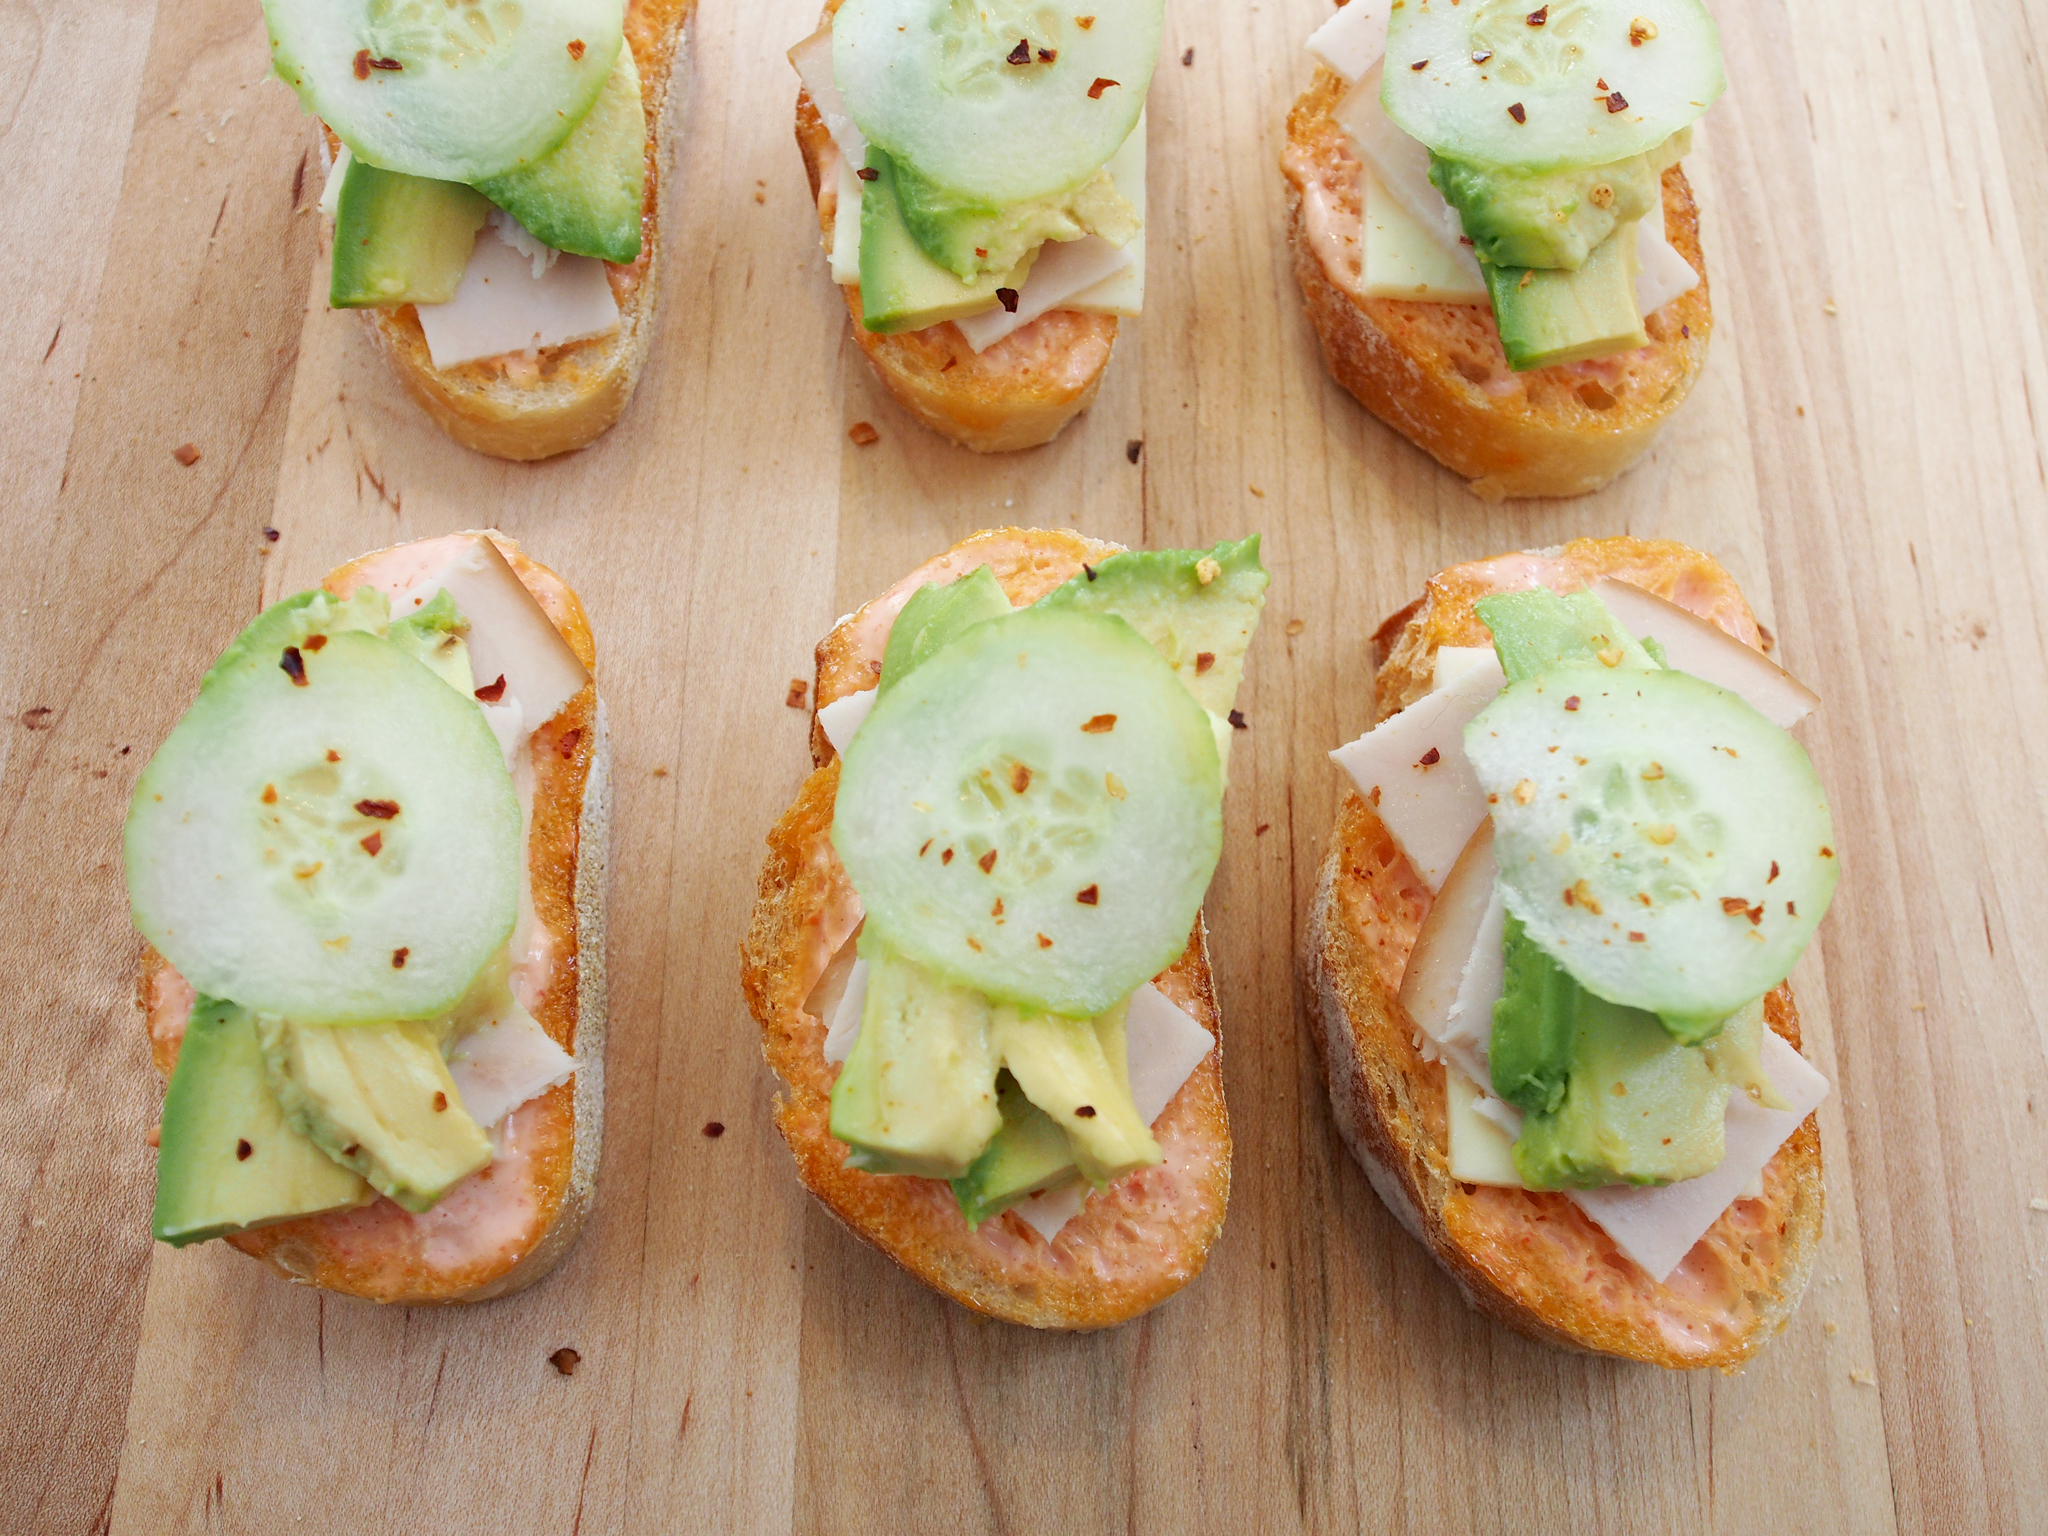 Mini Open Faced Turkey Avocado Sandwiches with Havarti cheese, cucumber and roasted red pepper mayo. All photos © Suzanne Spiegoski